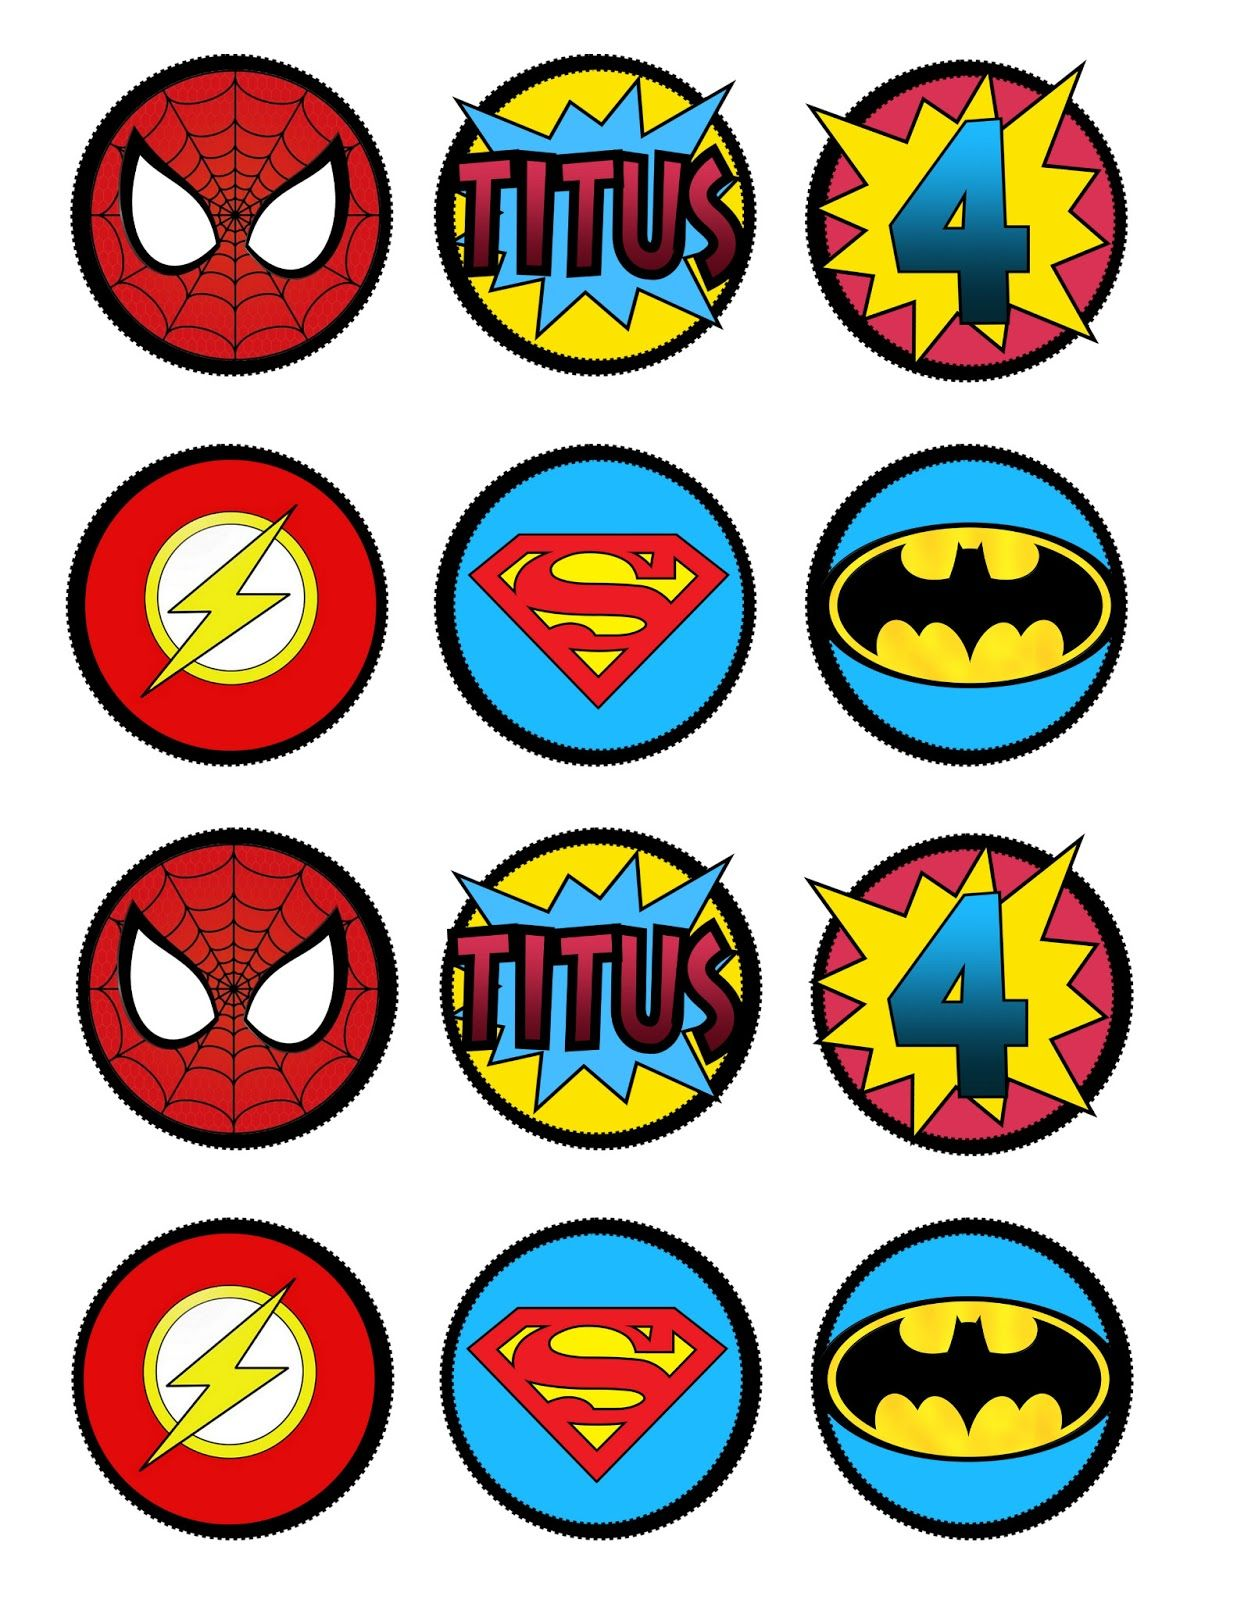 Marvel Malvorlagen Marvel Superhero The Marvel Super: Super Hero Cupcake Toppers Or Decorations By Lots O' Lydia